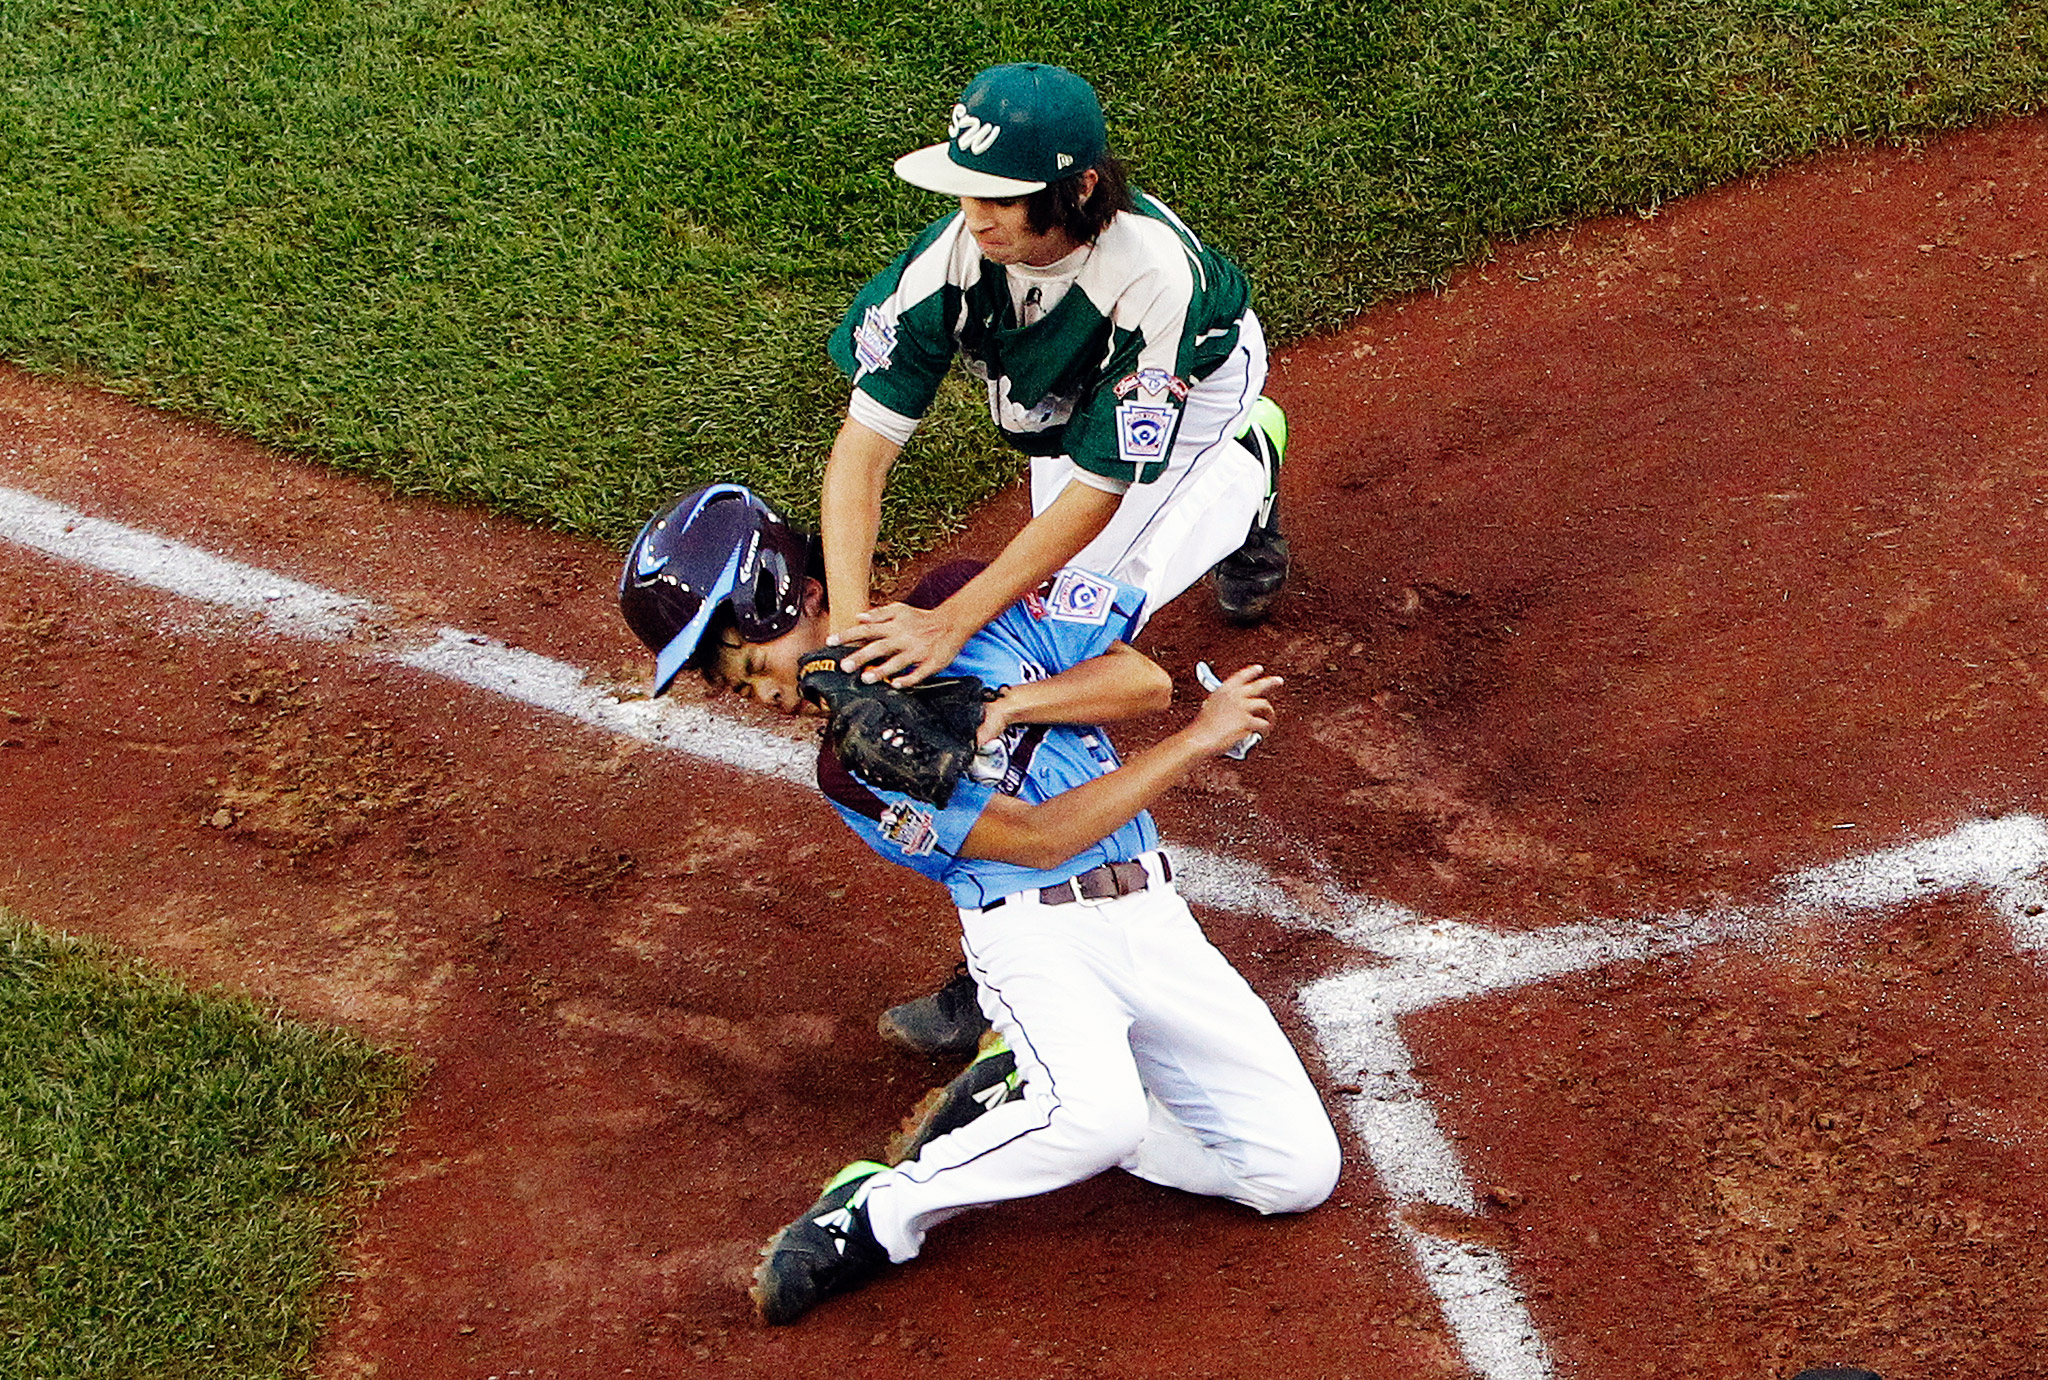 Philadelphia's Jack Rice was out at the plate when he was tagged by Pearland, Texas, pitcher Clayton Broeder at the Little League World Series.